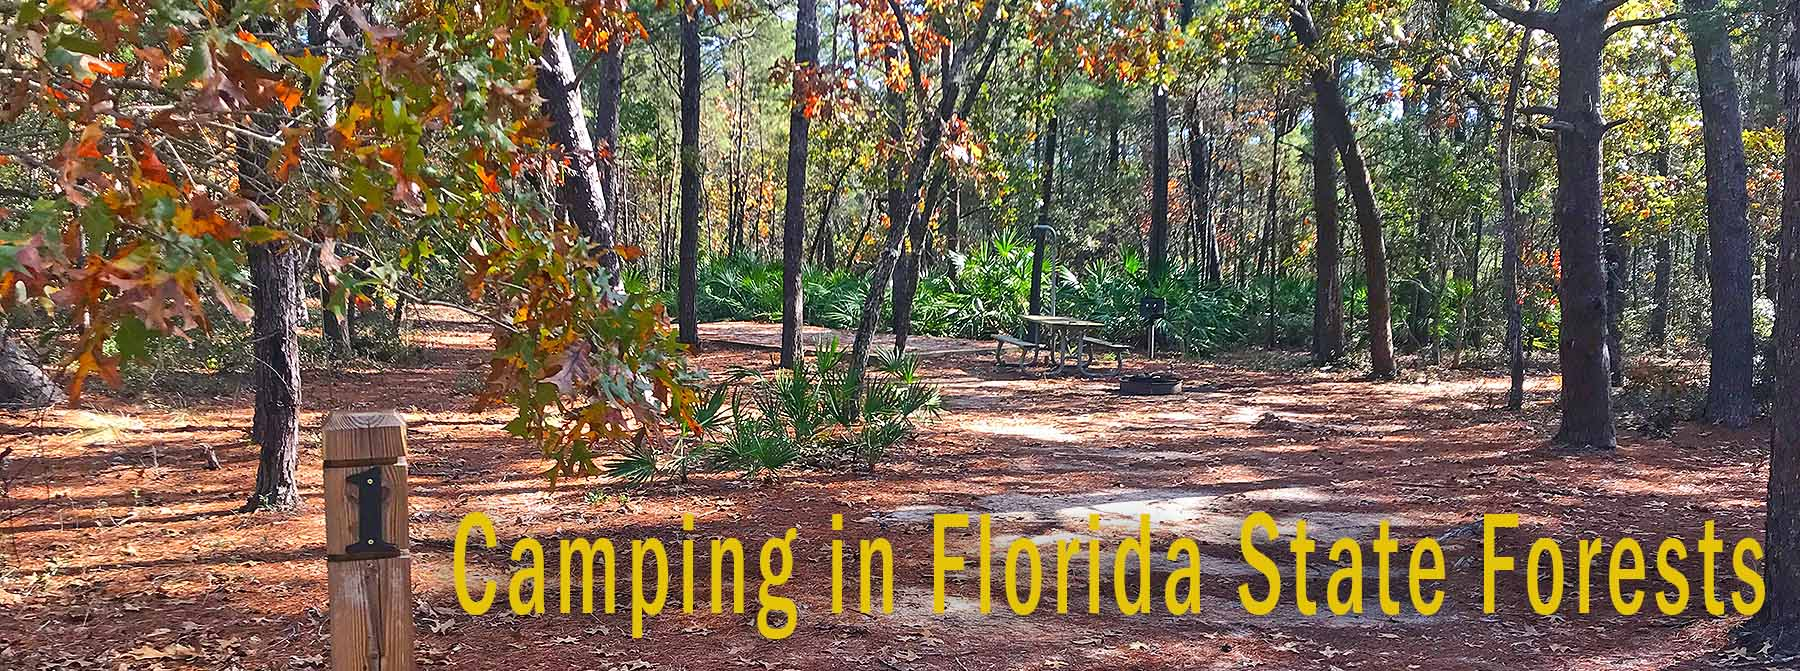 Florida State Forest Camping